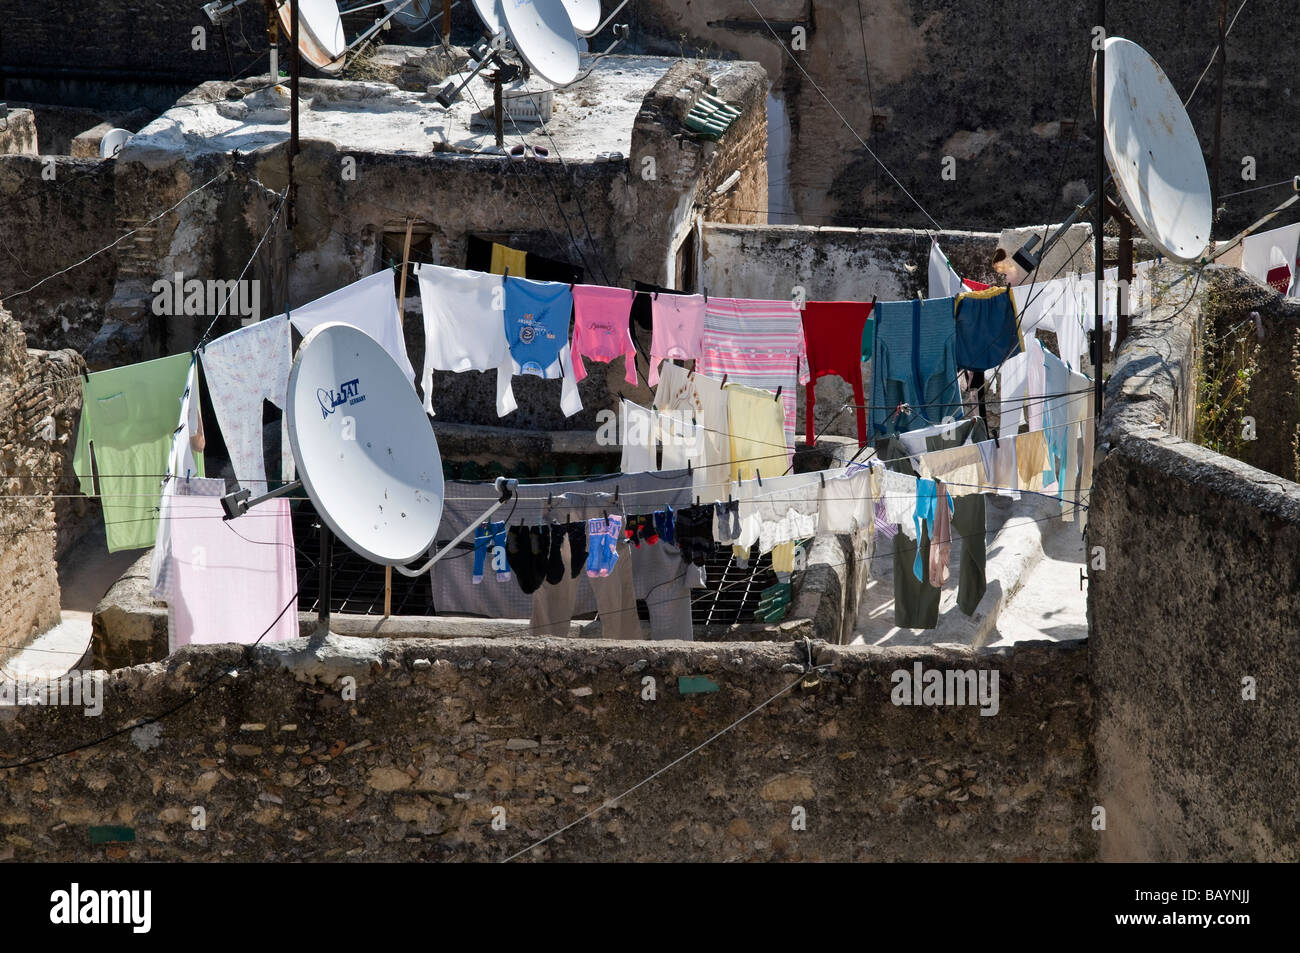 Over the rooftops view of Fes. Showing satellite dishes rows of washing hung out, derelict Riads, grass growing - Stock Image